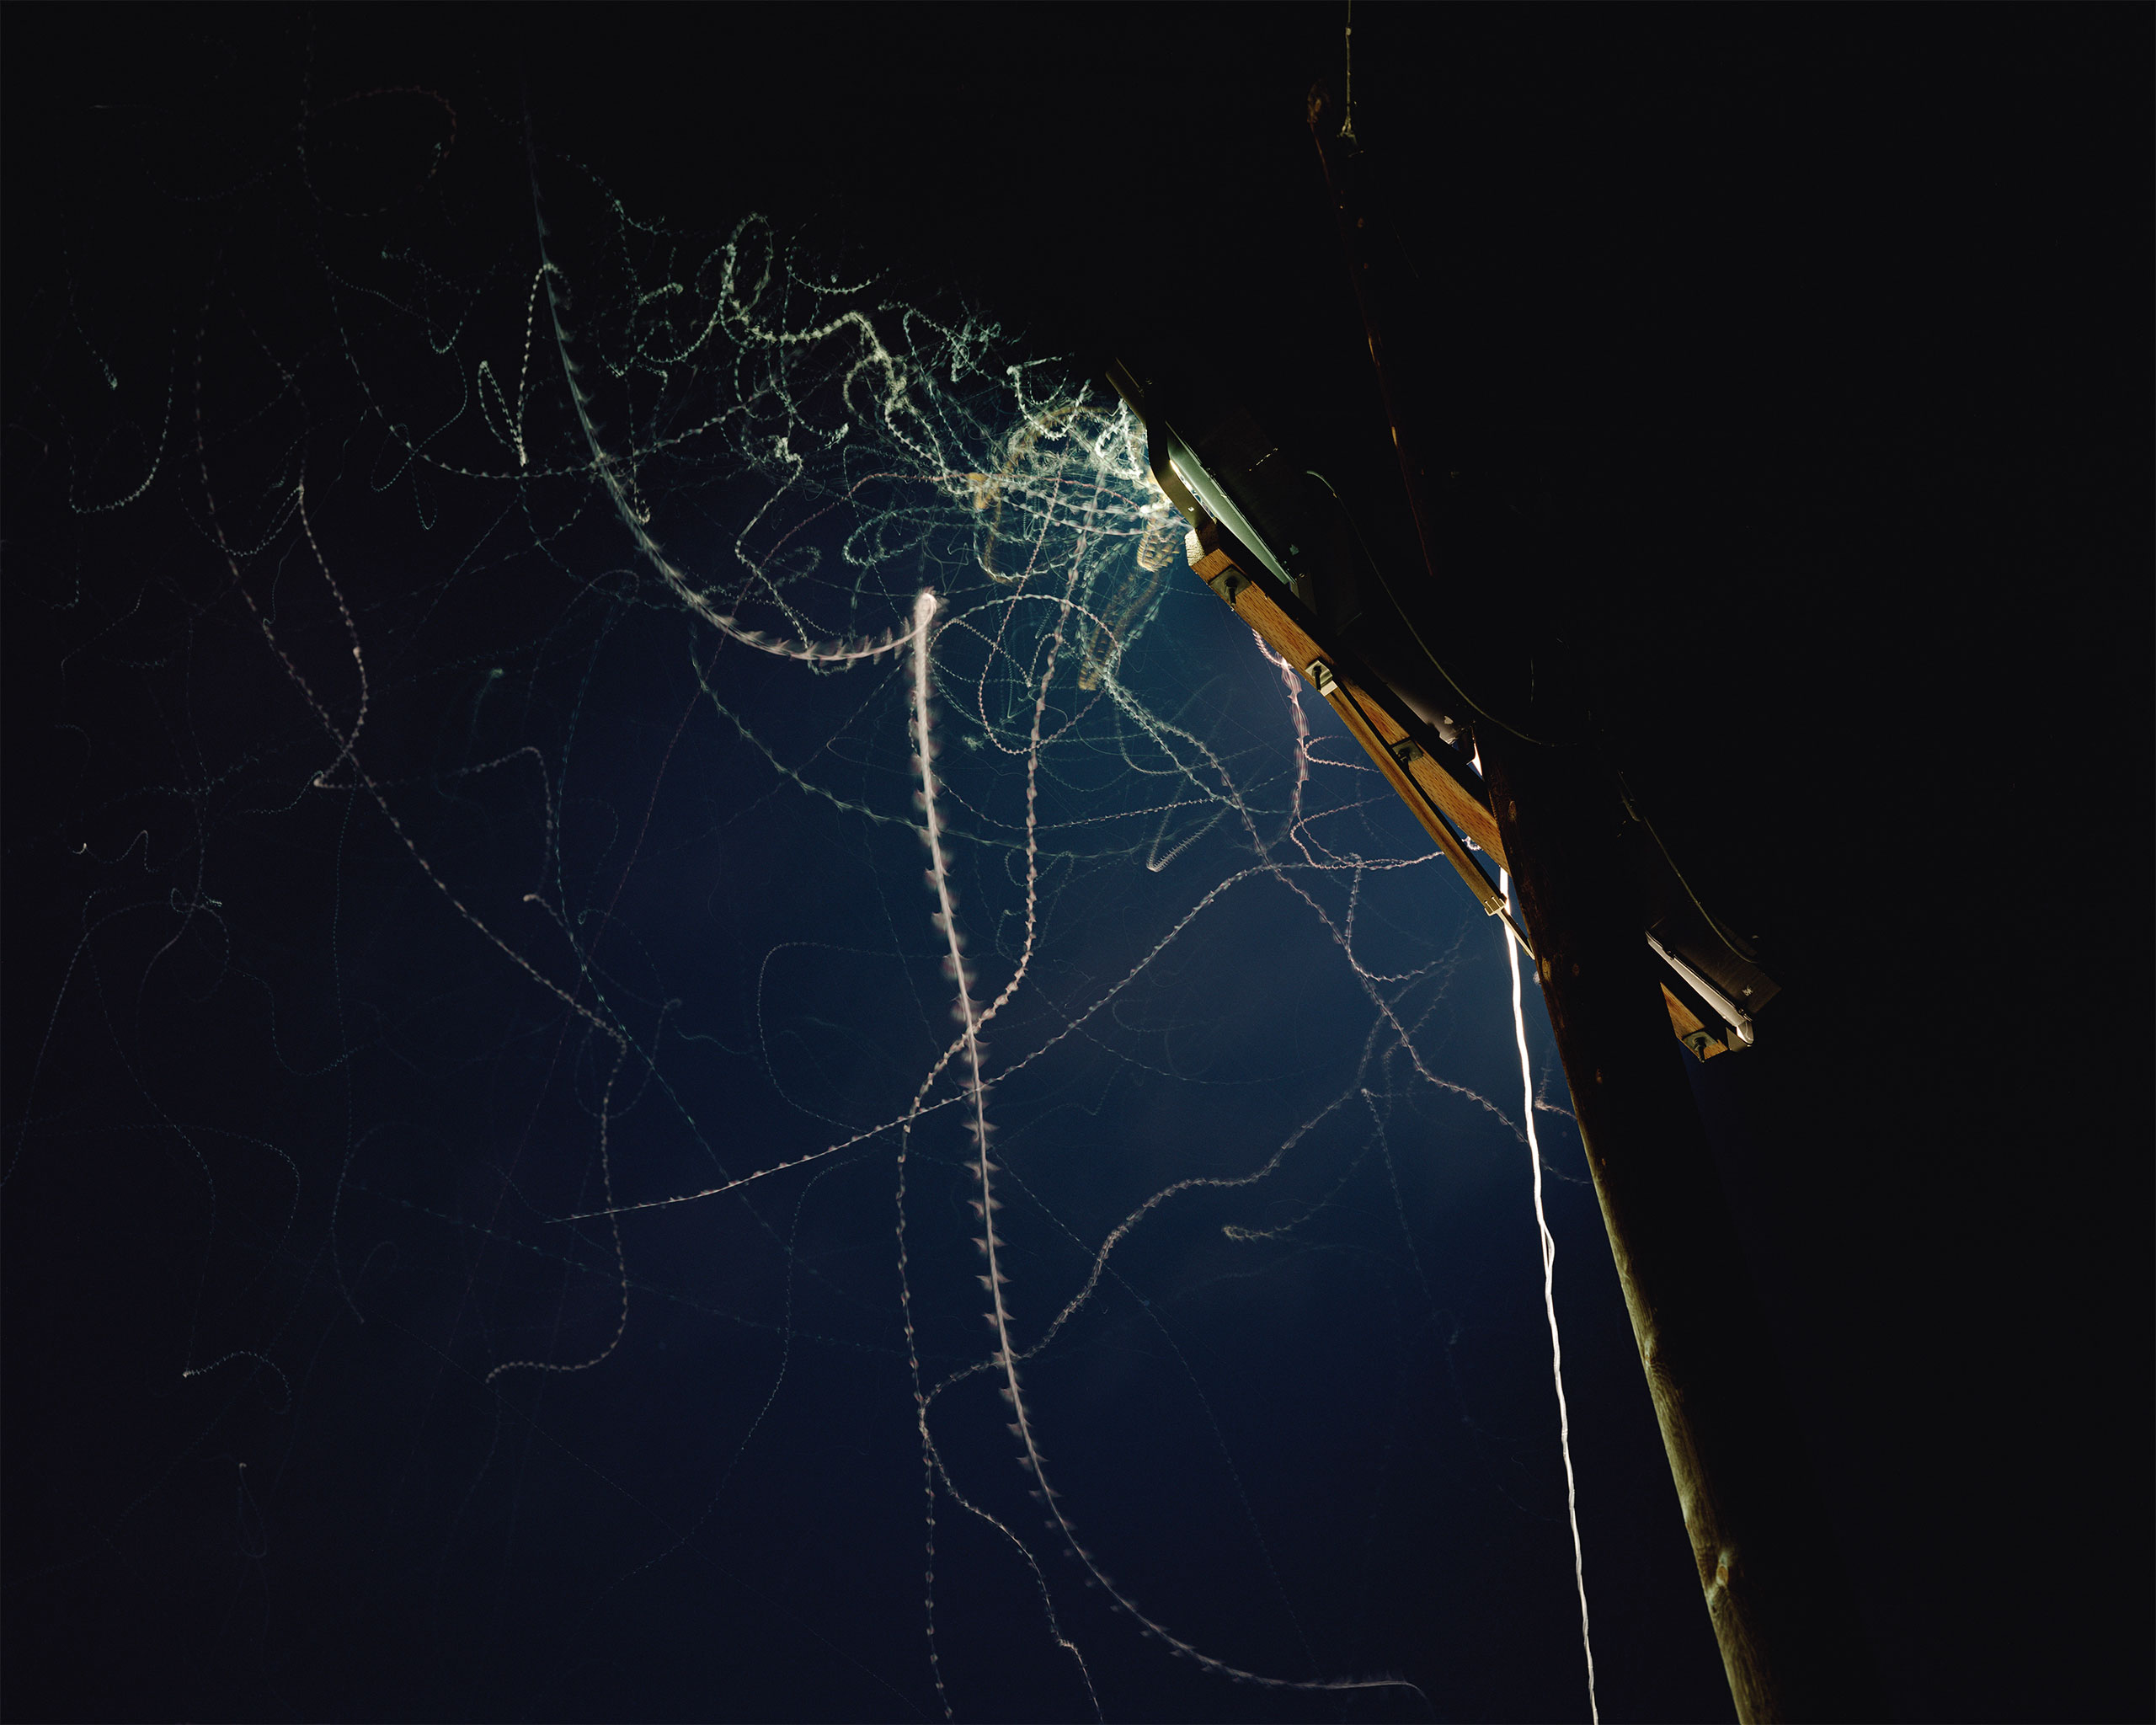 Arizona–Mexico border. A long camera exposure captures the flight of moths as they destroy themselves against the hot security lights. 2006.